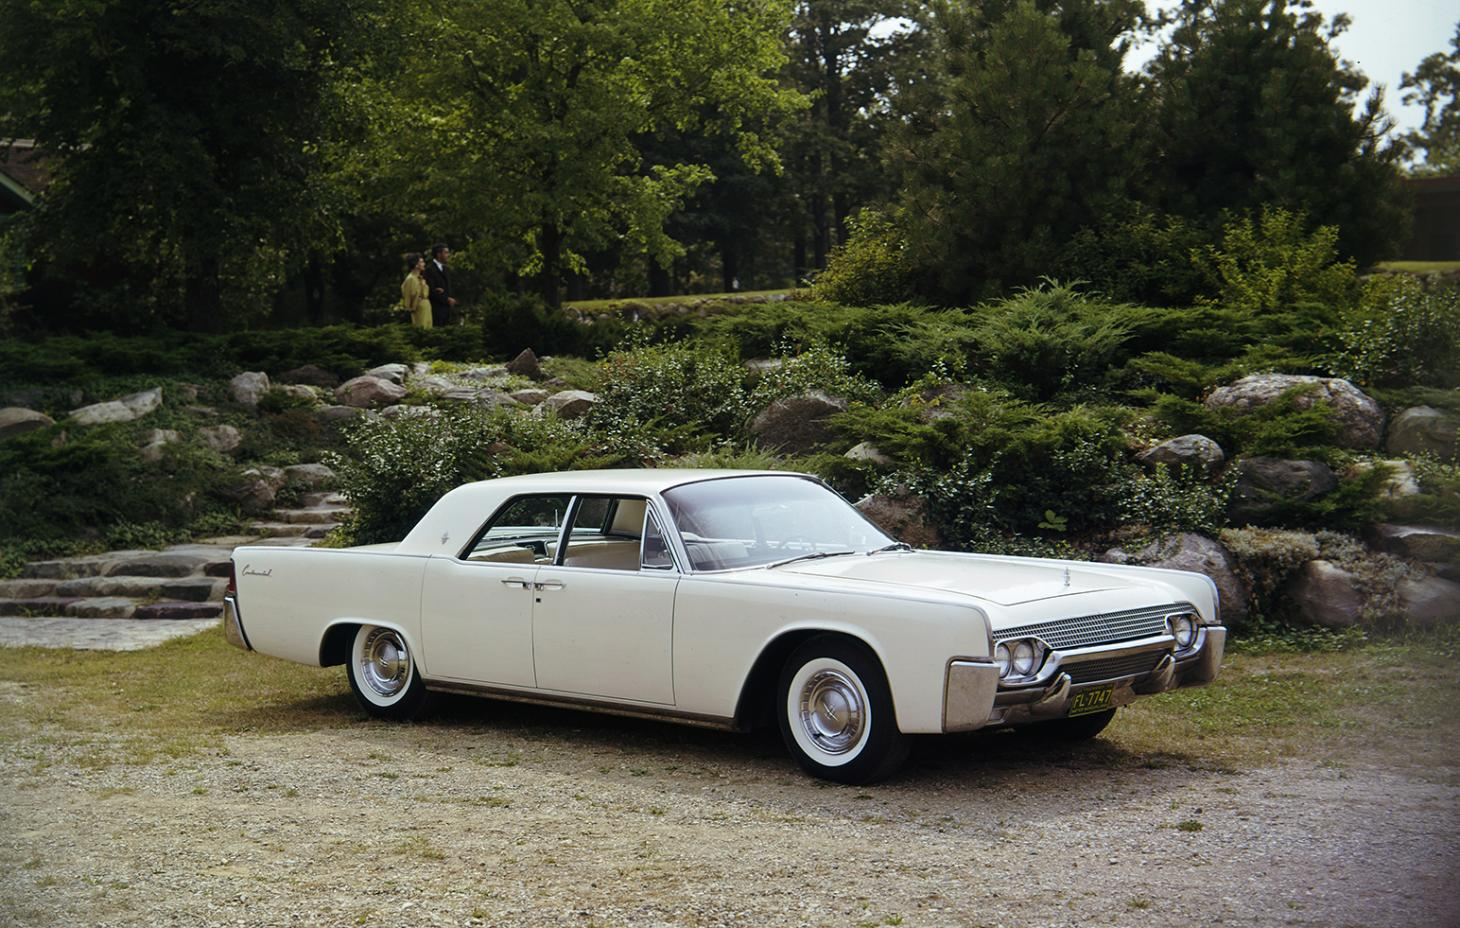 1961 Lincoln Continental four door car